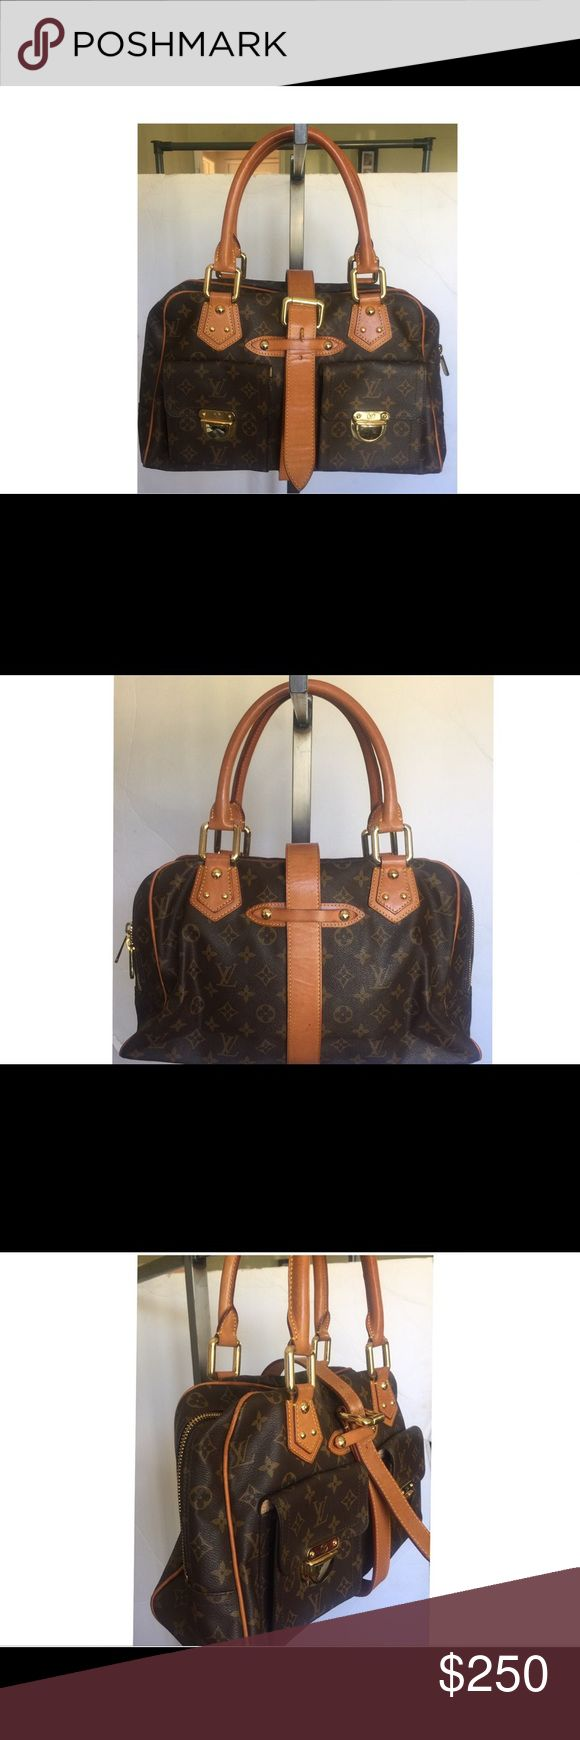 Louis Vuitton Manhattan Handbag Price is low because of the obvious so please don't ask. Good preowned condition, shows some signs of wear. Real leather heavy in weight and patina. Large size. Louis Vuitton Bags Satchels